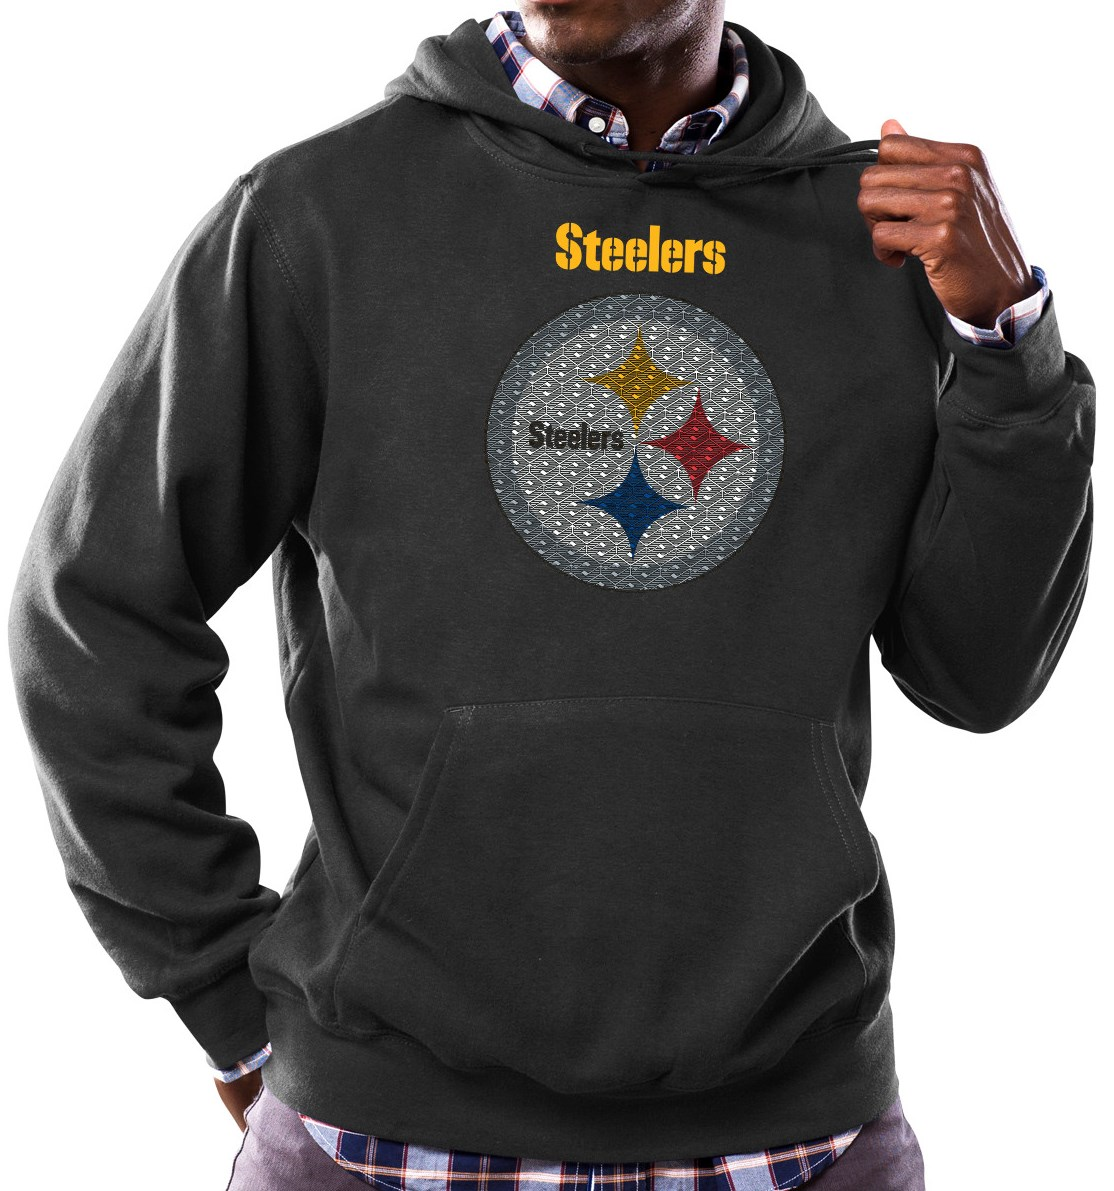 Pittsburgh Steelers Majestic NFL Critical Victory Hooded Sweatshirt - Black